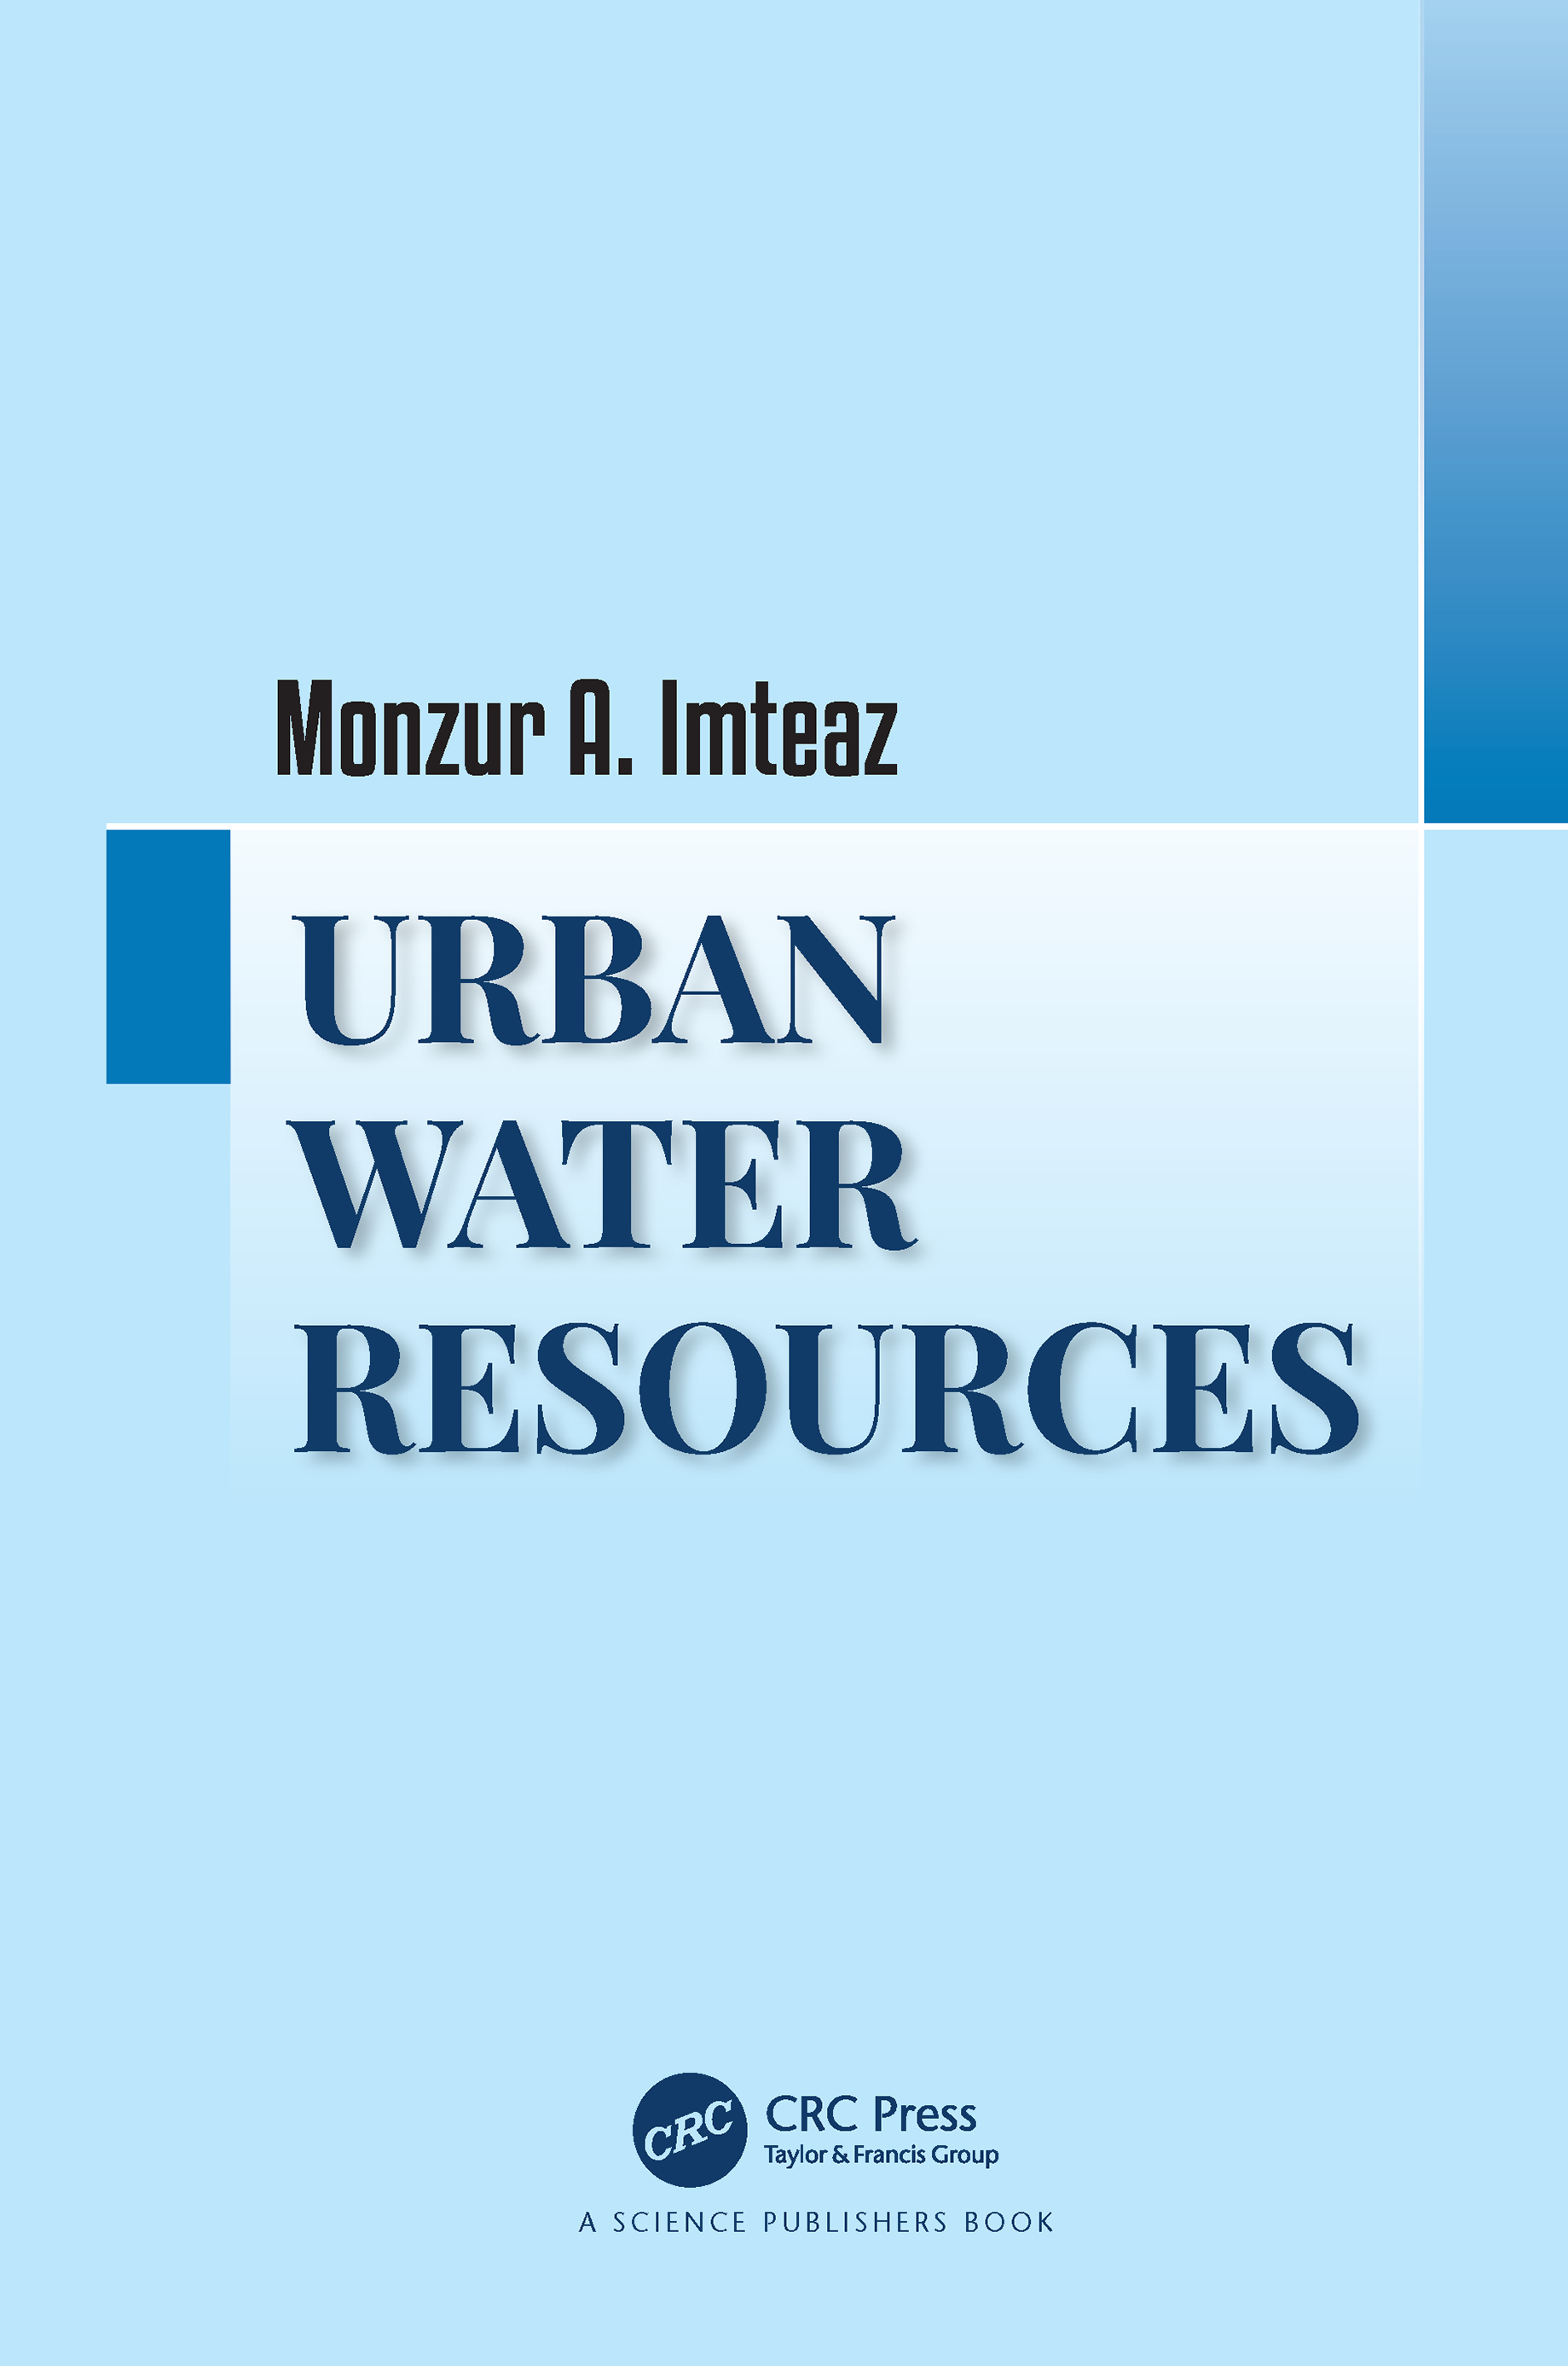 Urban Water Resources book cover